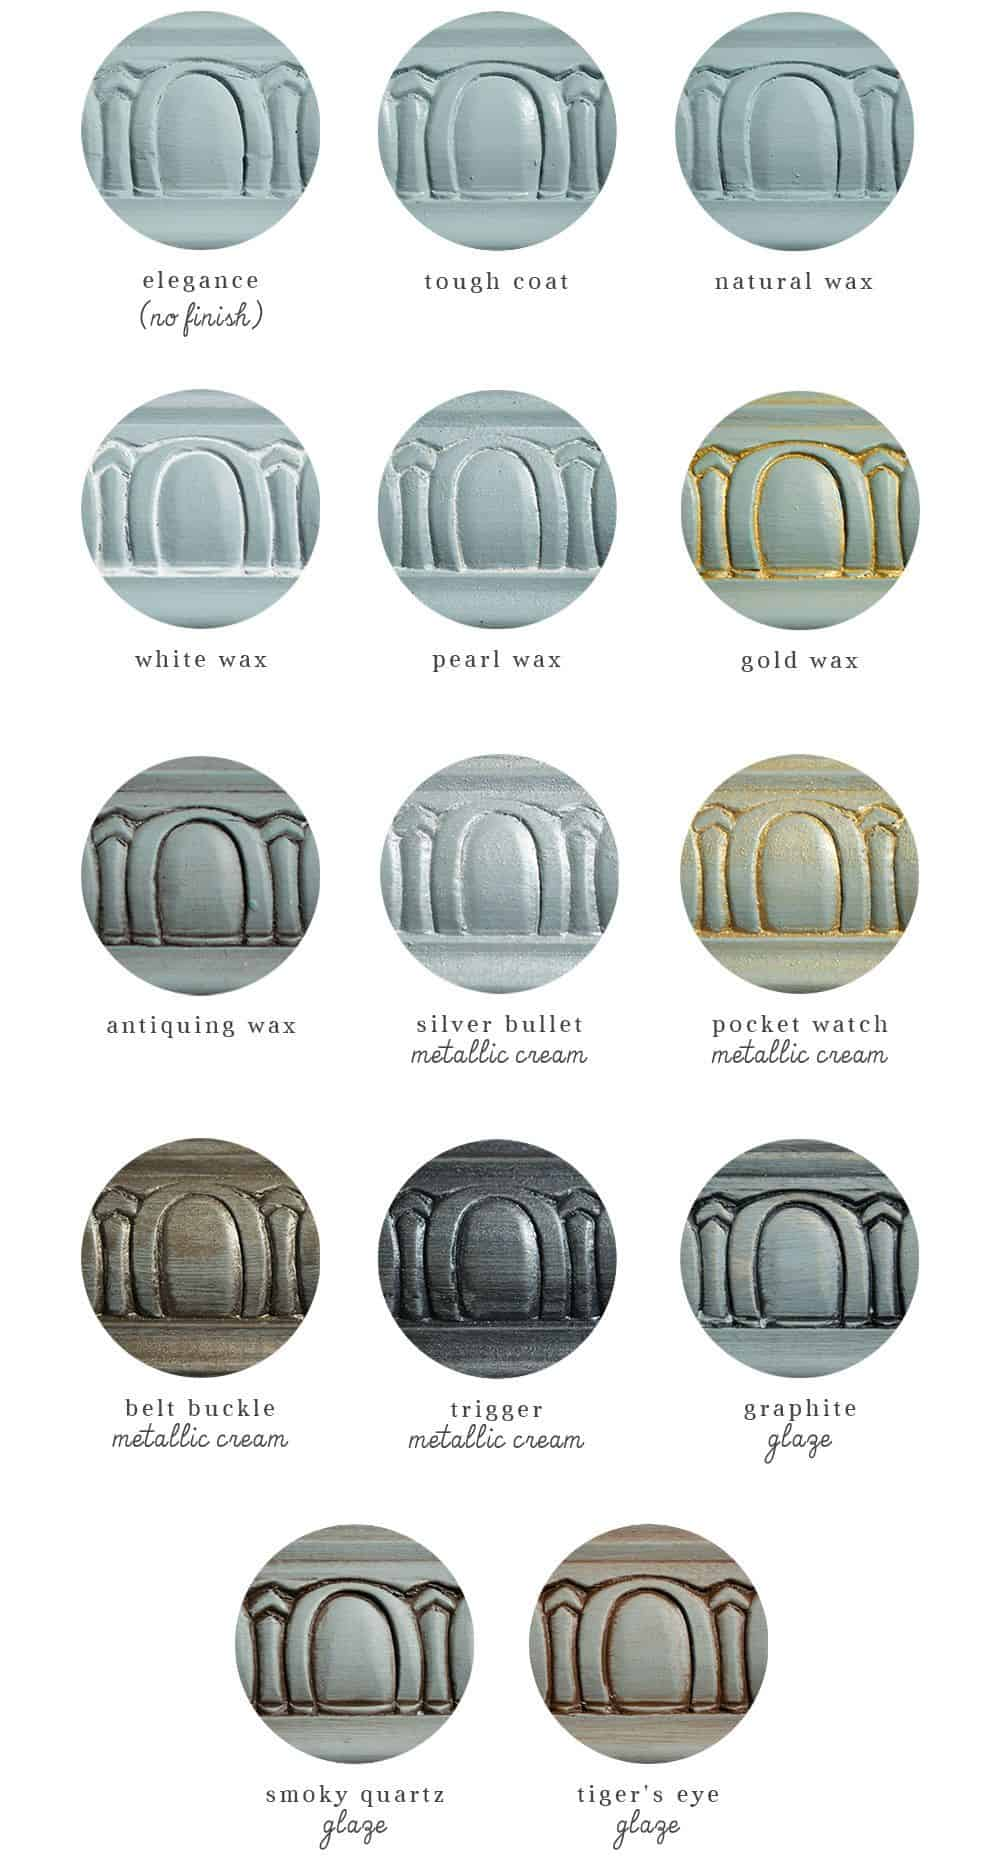 color guide of blue paint with different colors of glaze and wax finishes over it